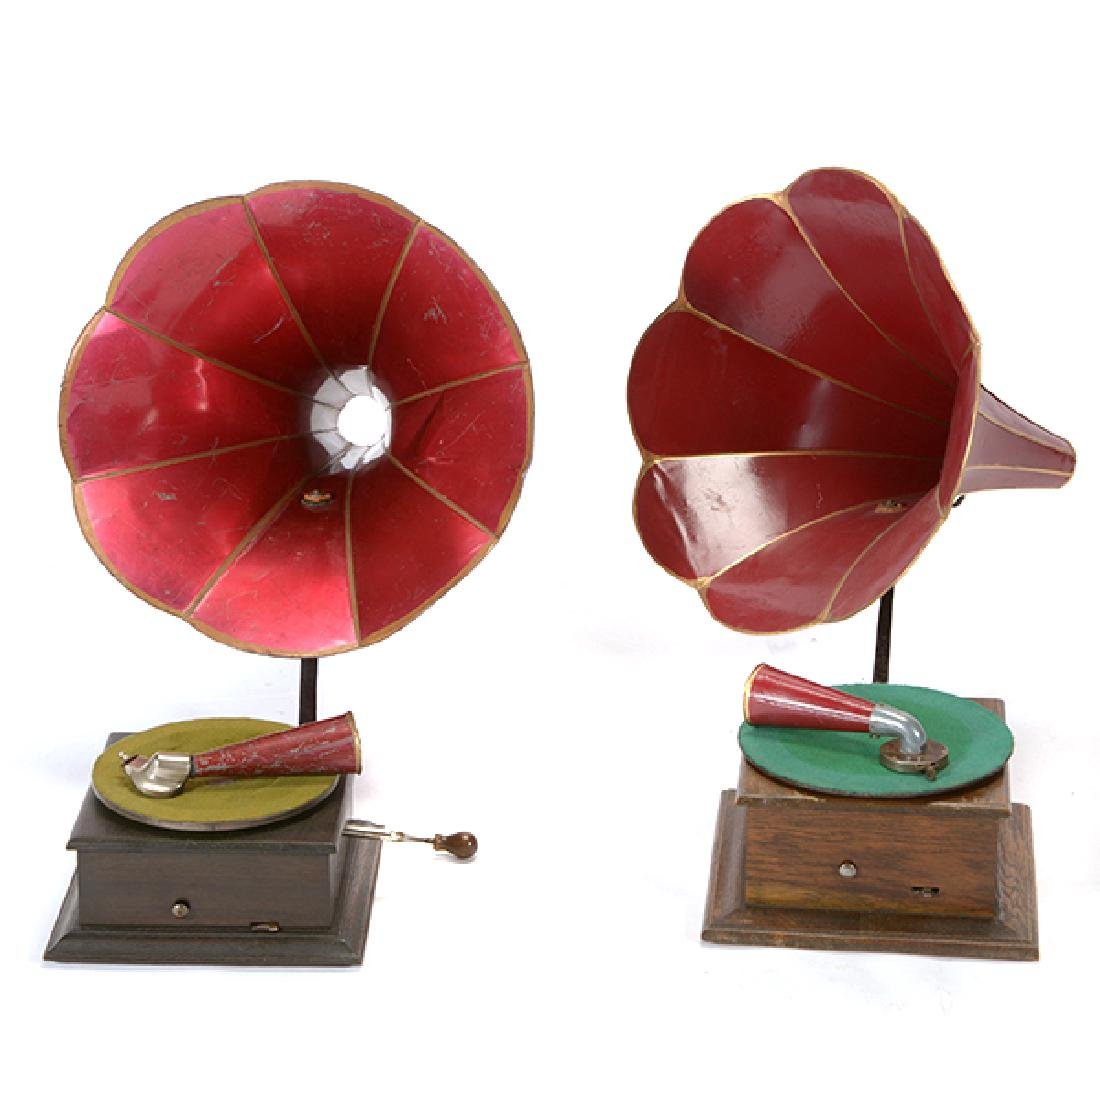 Two Busy Bee Phonographs with Horns - 2